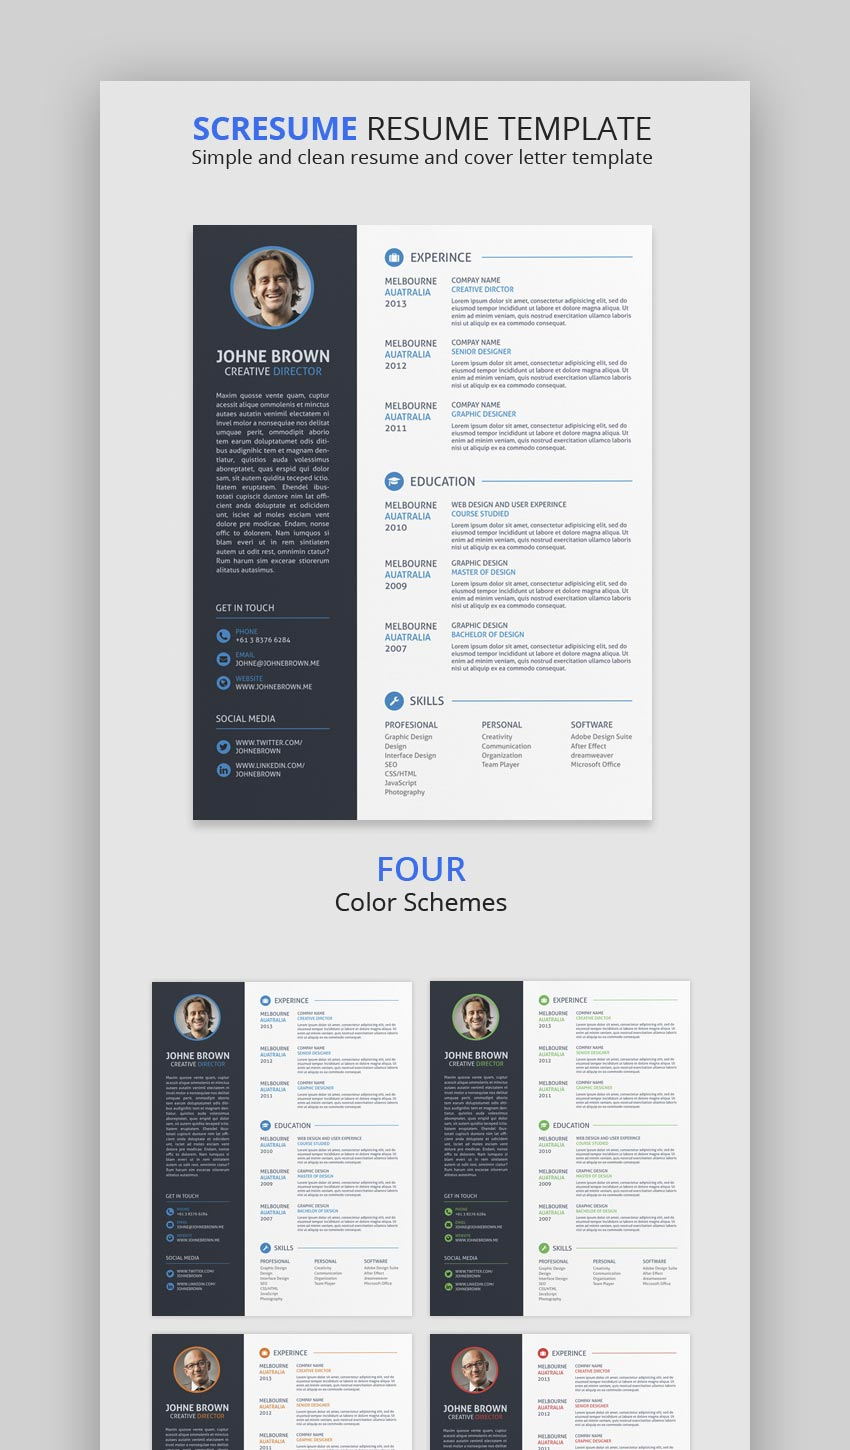 This Creative Resume Template Package Is Like A Kit That Allows You To Design Variety Of Resumes Because It Includes Four Different Color Schemes And